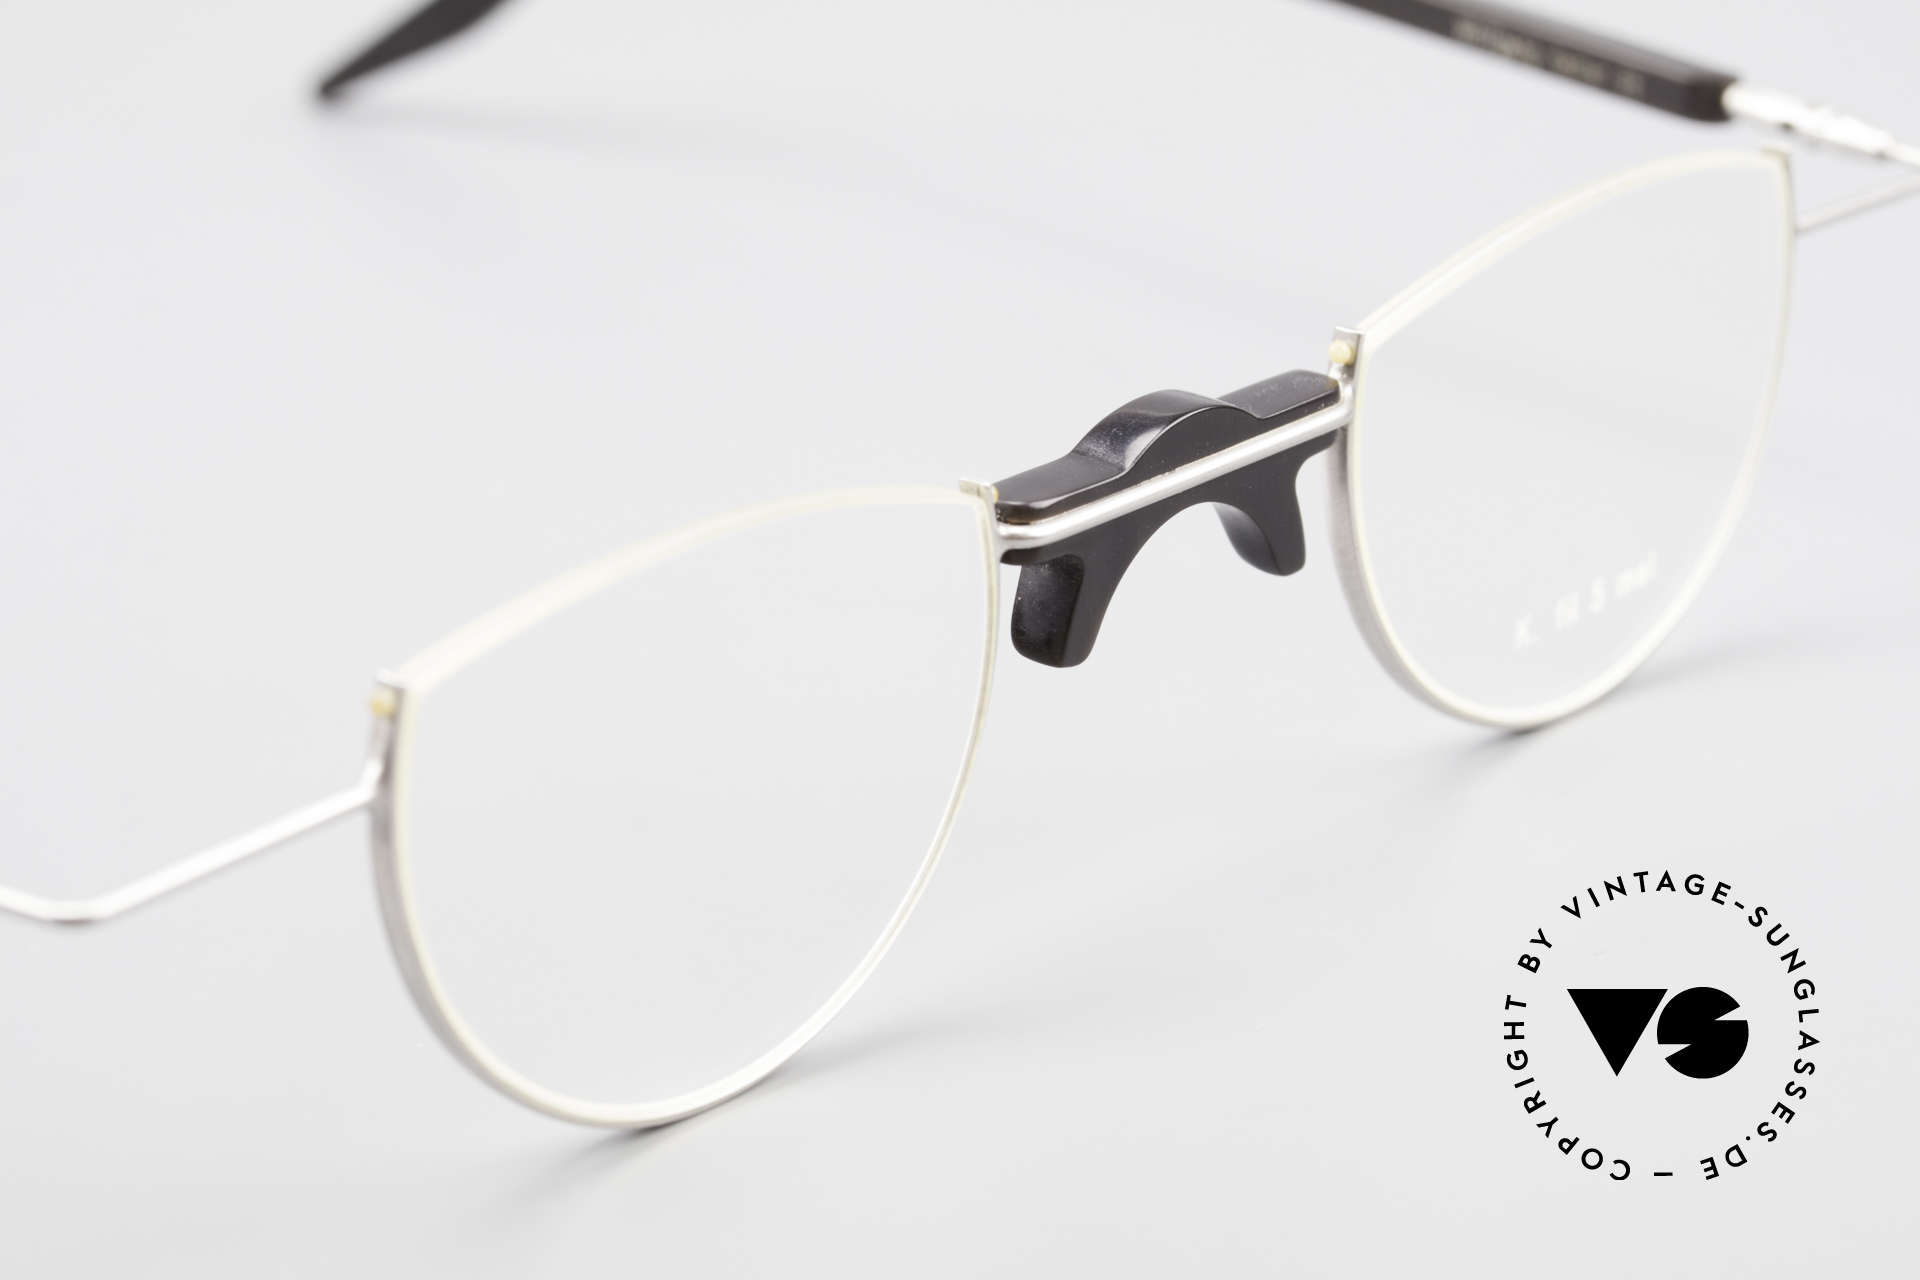 Wolfgang Katzer Fil 5 Genuine Horn Reading Glasses, reading glasses for individualists; sophisticated style, Made for Men